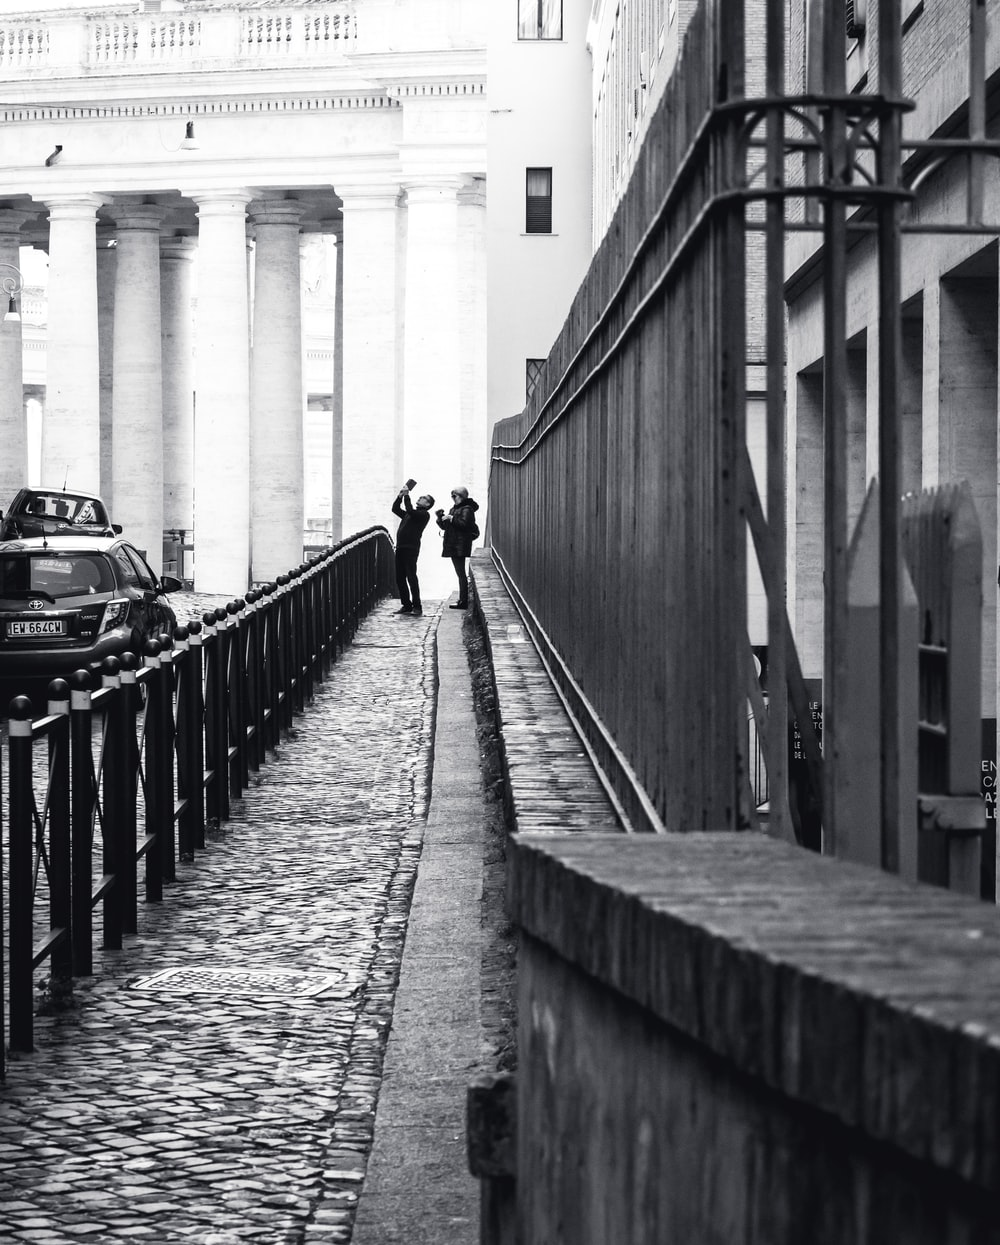 grayscale photography of two people standing near railings beside building